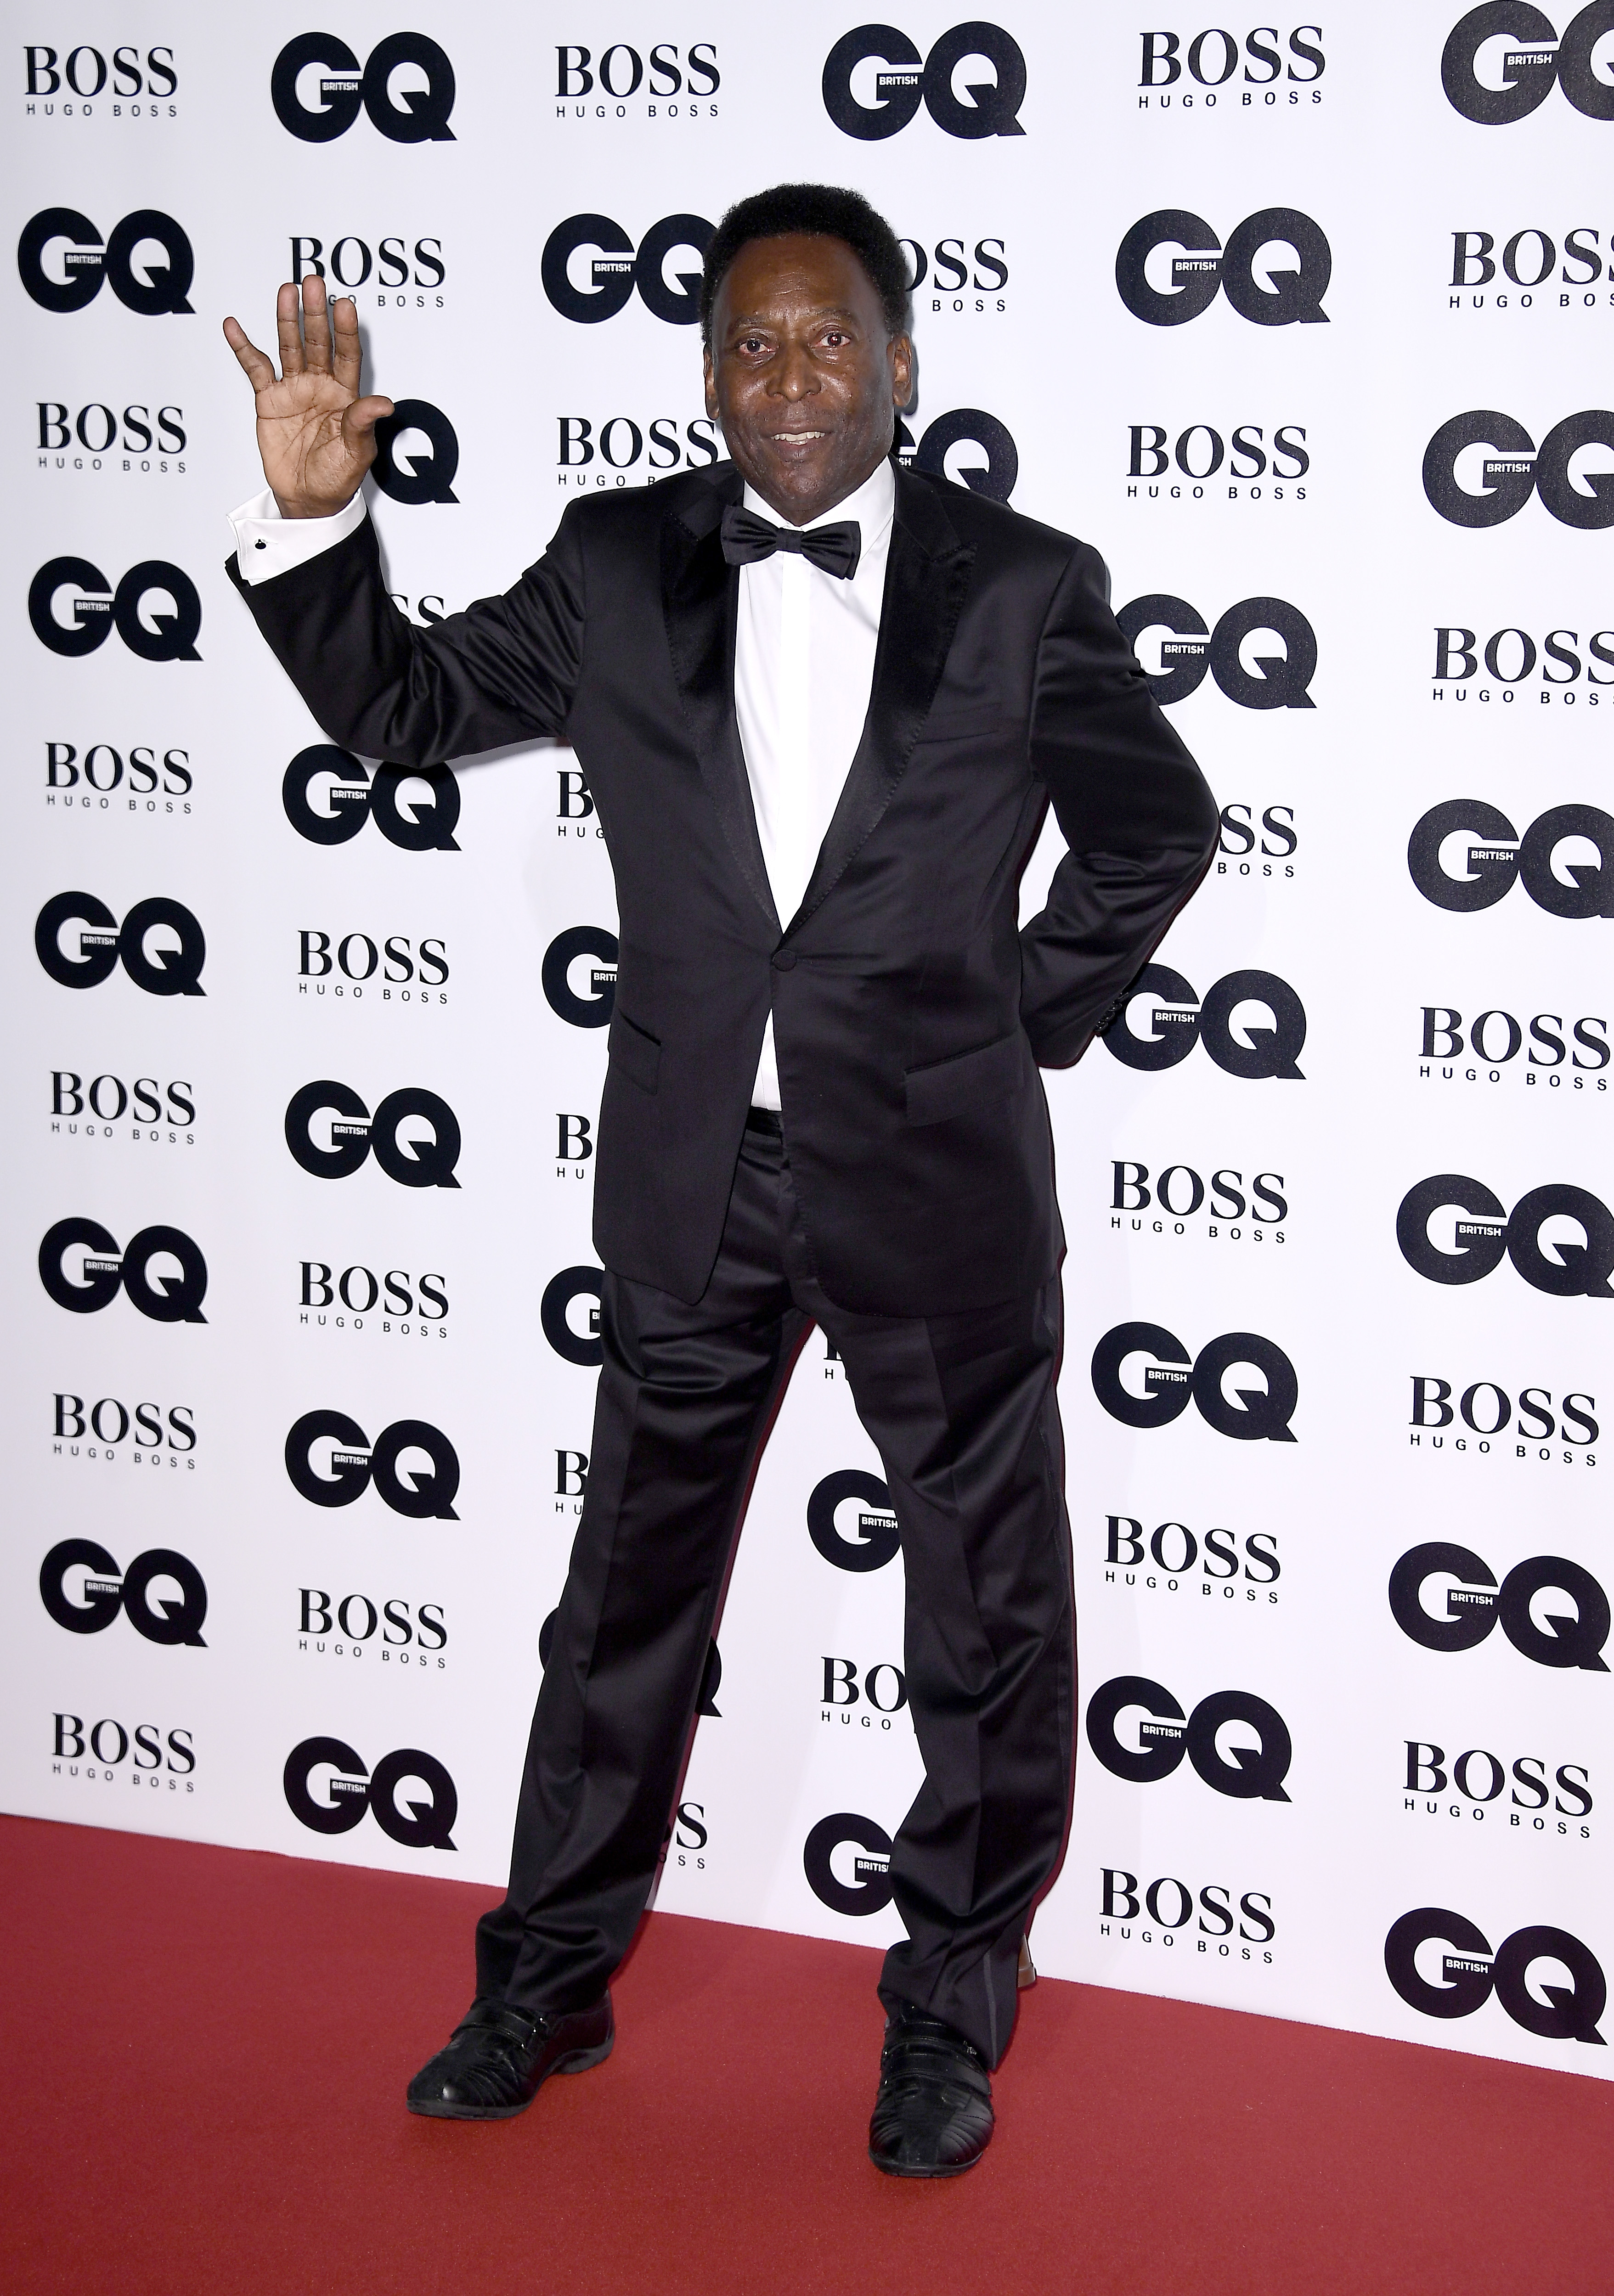 LONDON, ENGLAND - SEPTEMBER 05:  Pele attends the GQ Men Of The Year Awards at the Tate Modern on September 5, 2017 in London, England.  (Photo by Gareth Cattermole/Getty Images)